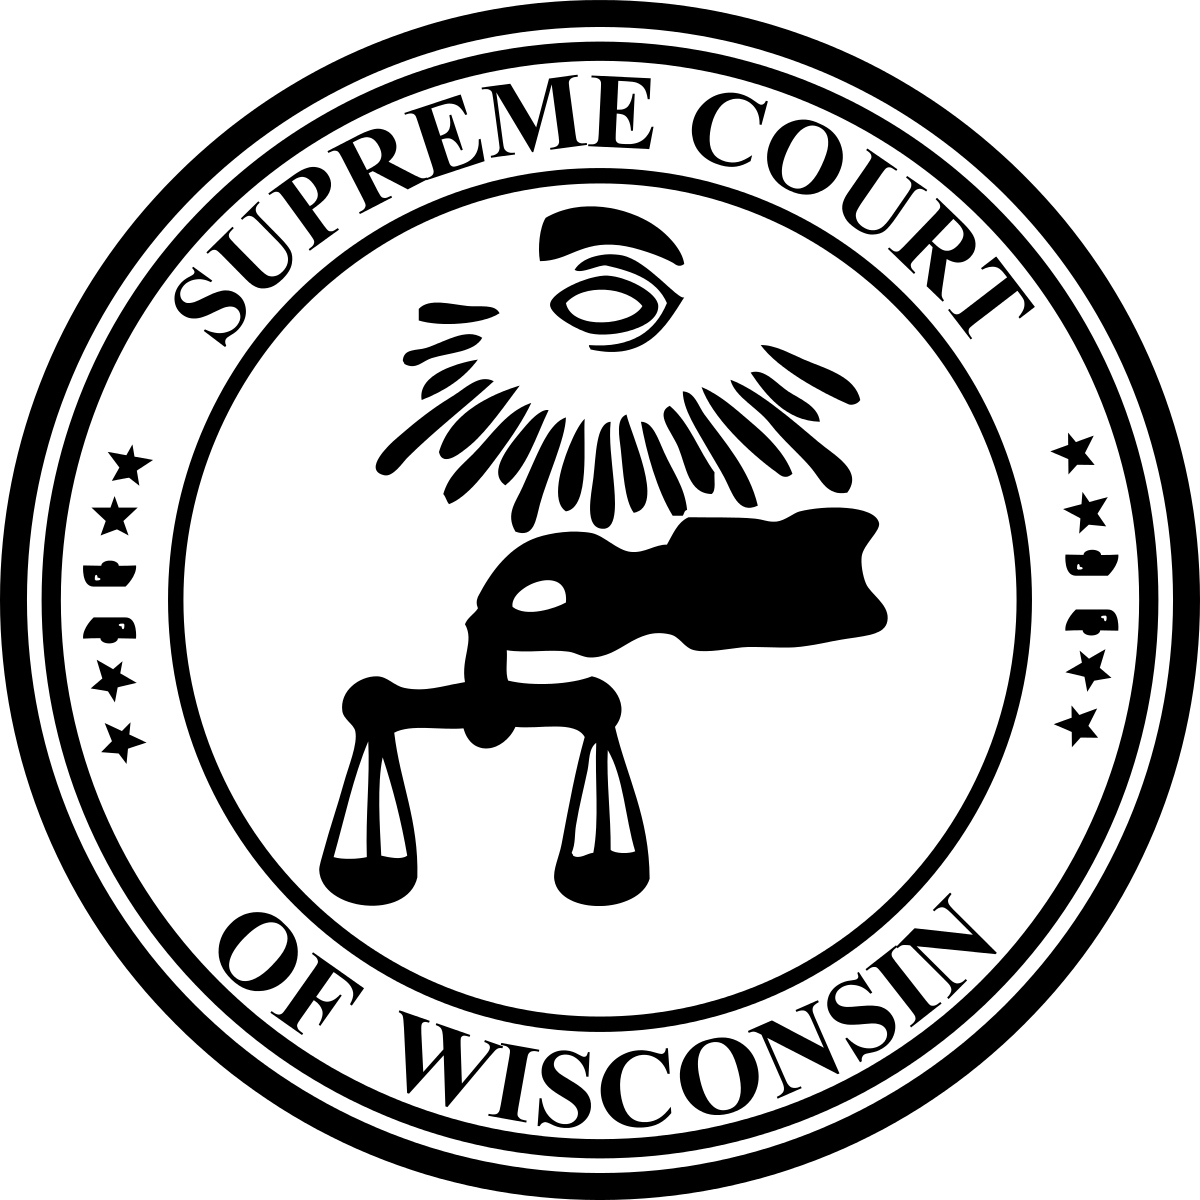 1200x1200 Wisconsin Supreme Court